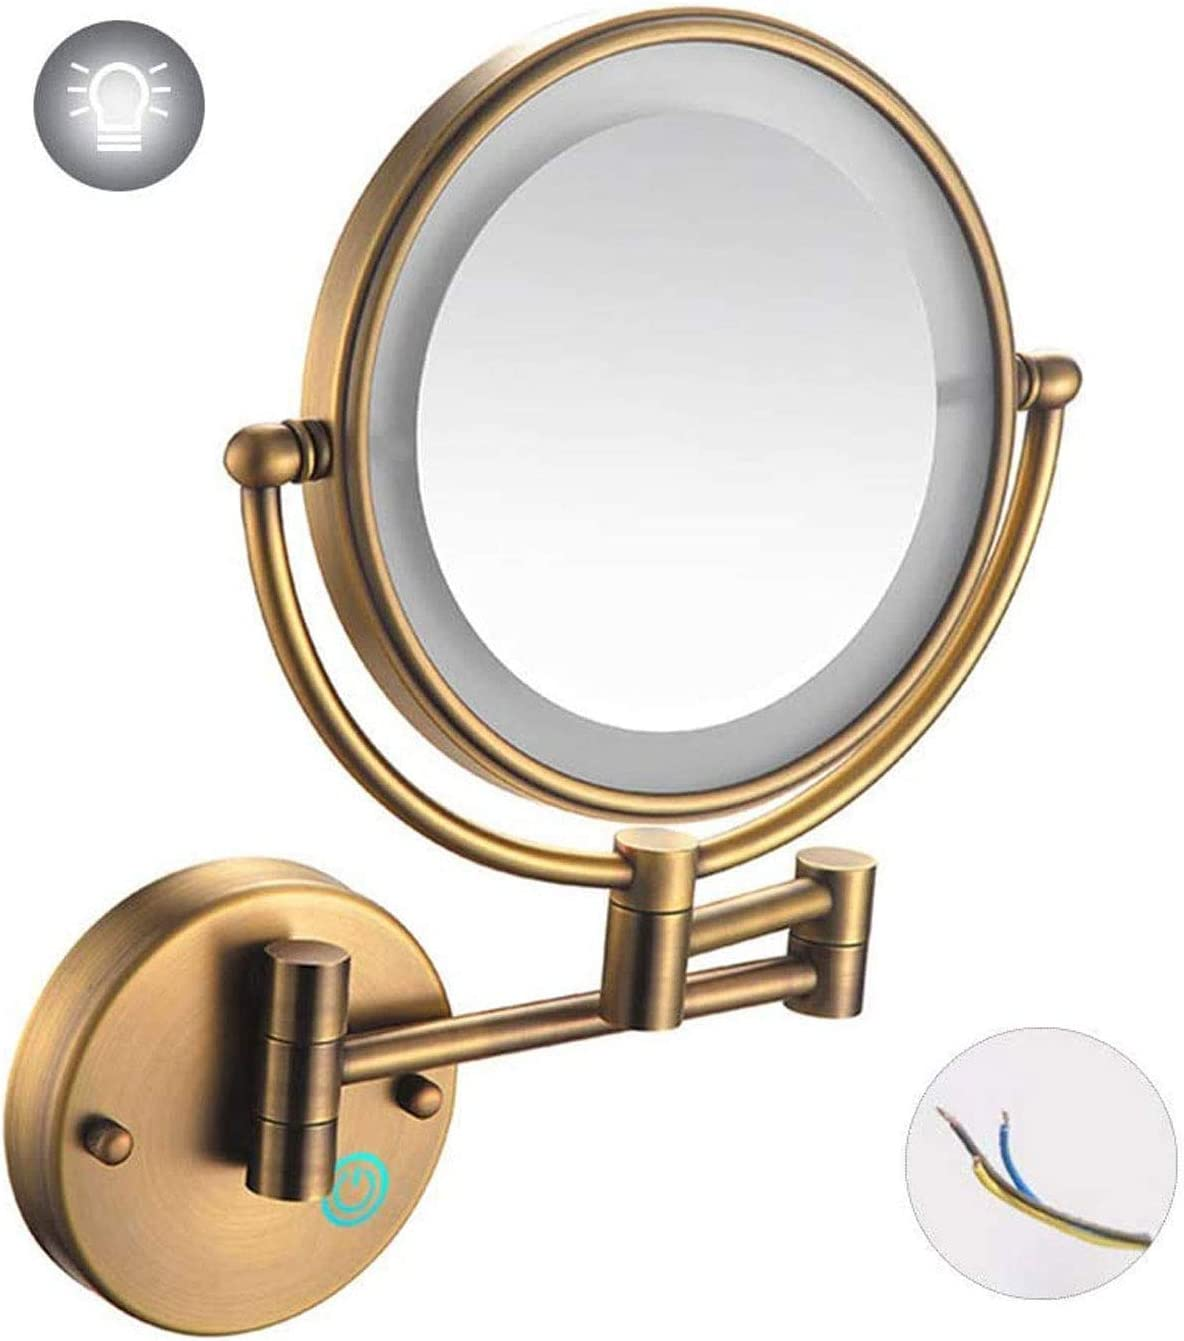 ZHCHL Makeup Dallas Mall Mirror Wall Mounted with Led Lights Overseas parallel import regular item Double- 8 Inch